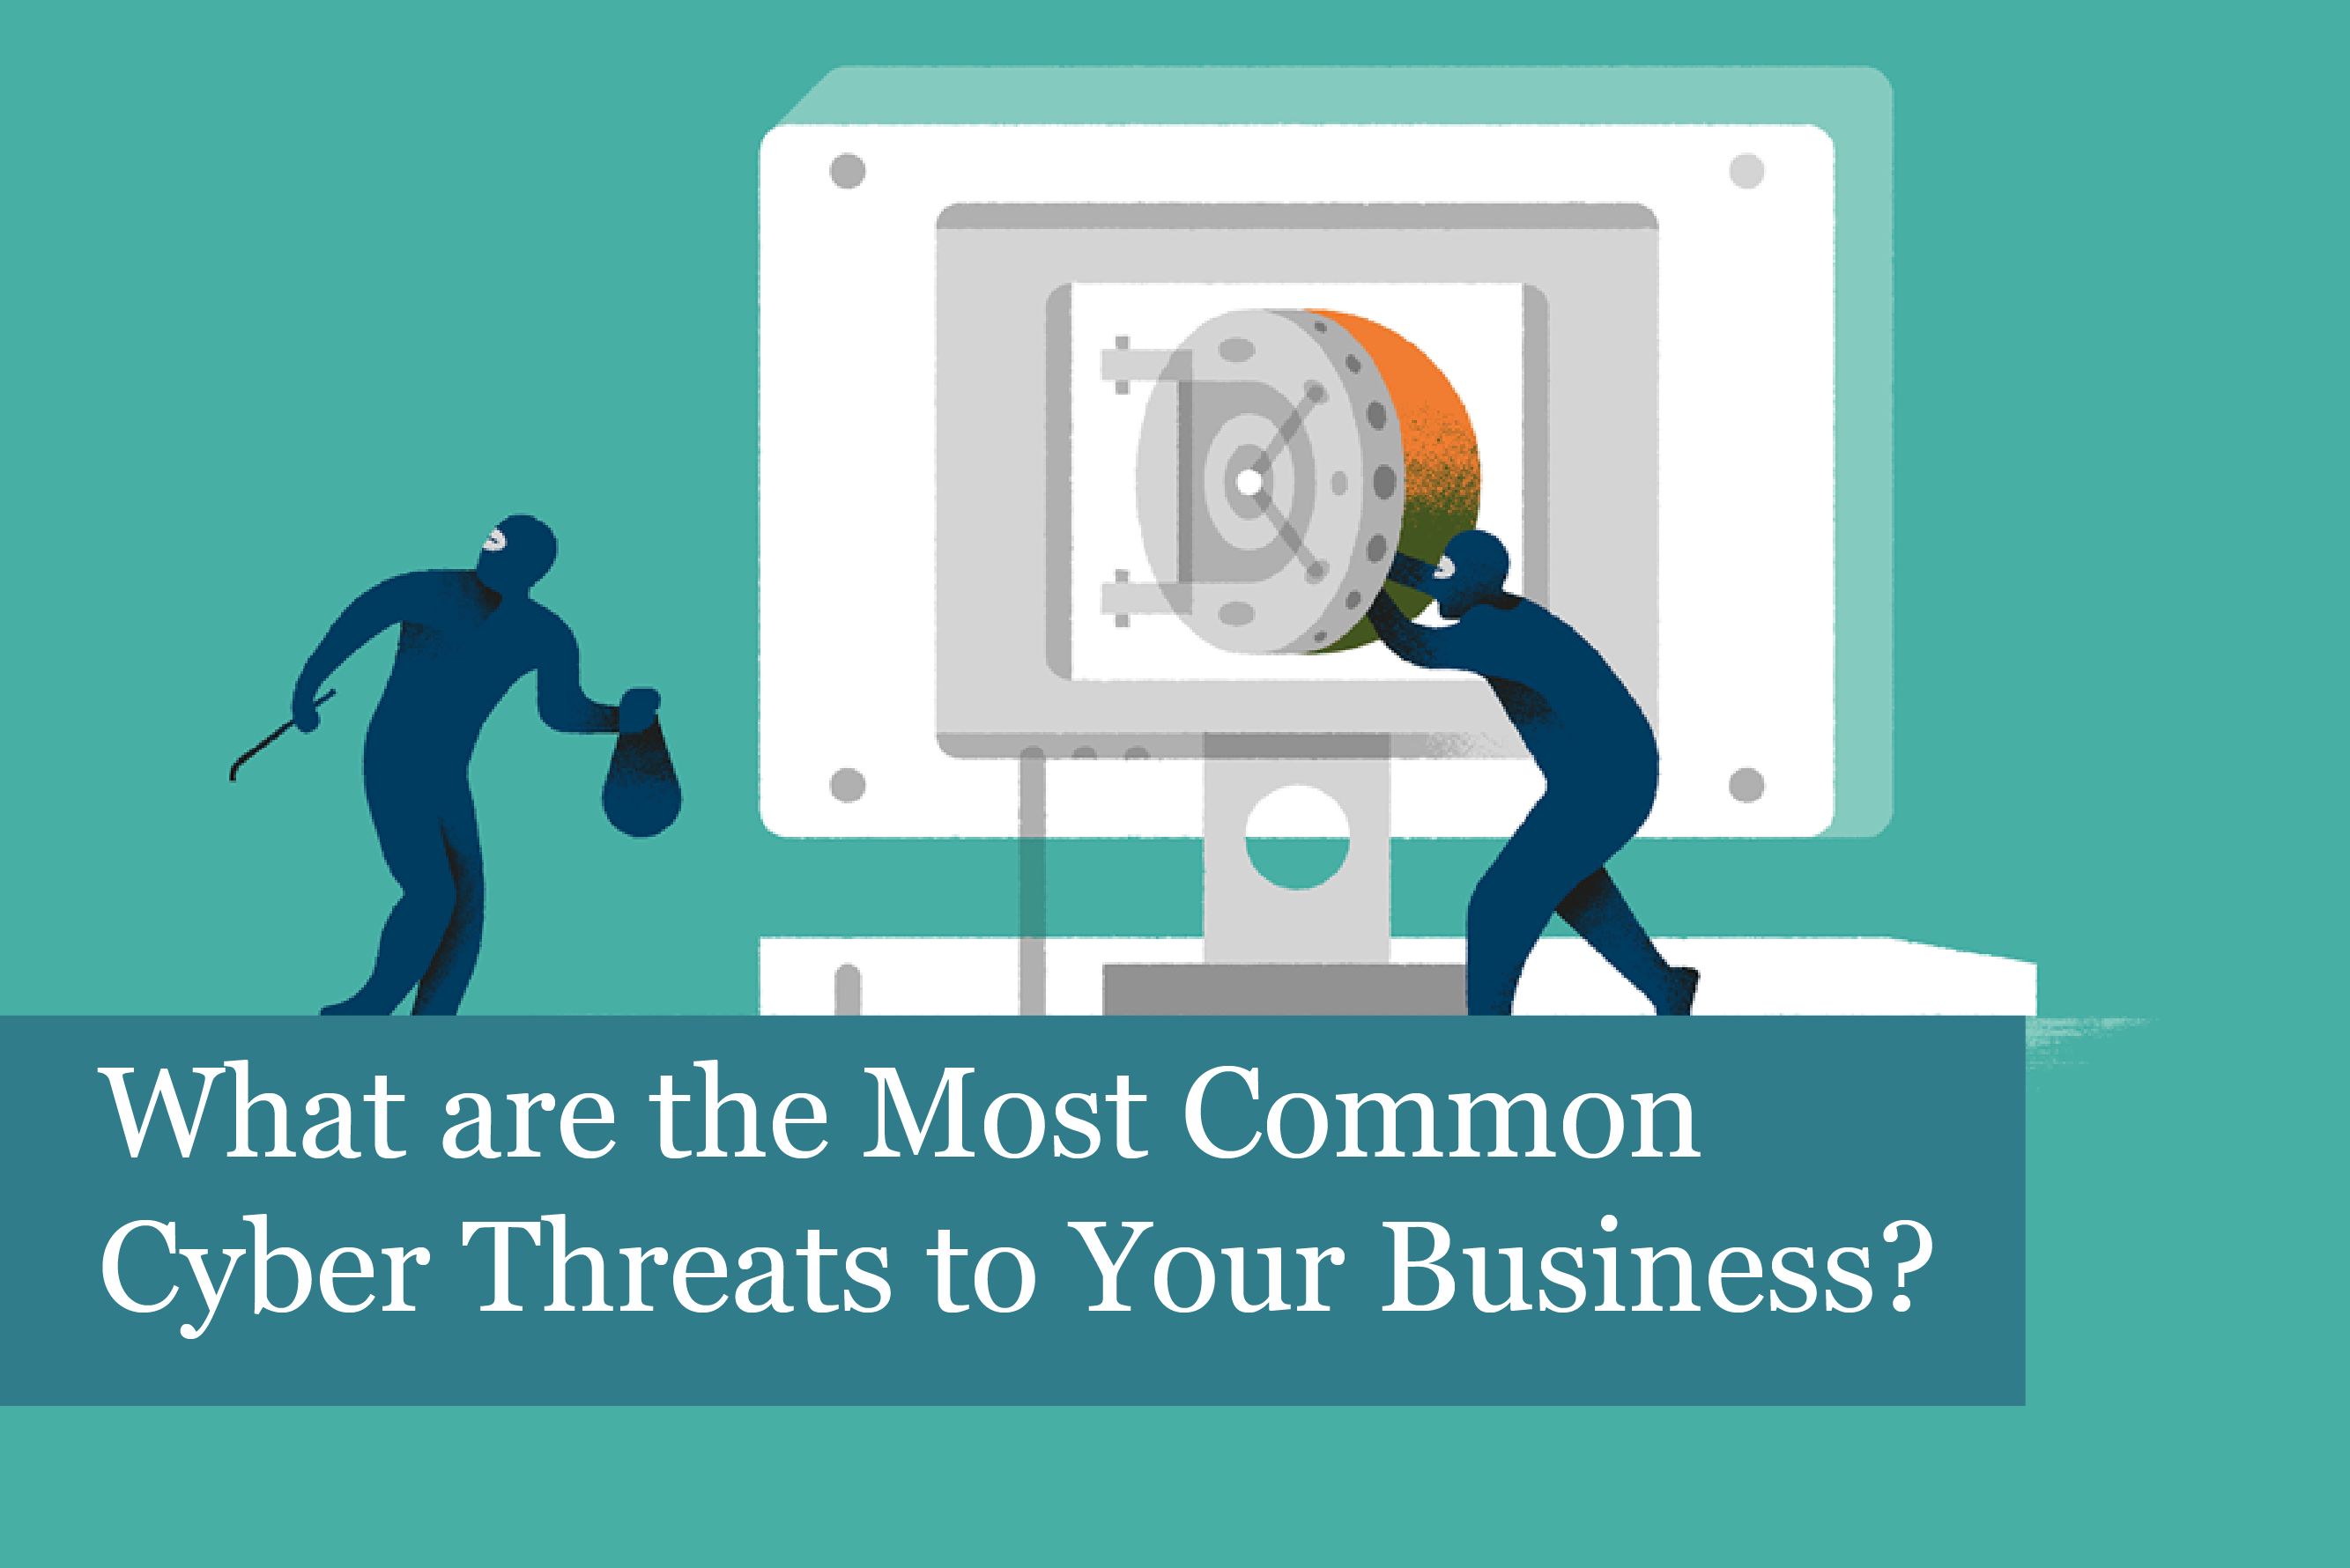 What are the Most Common Cyber Threats to Your Business?